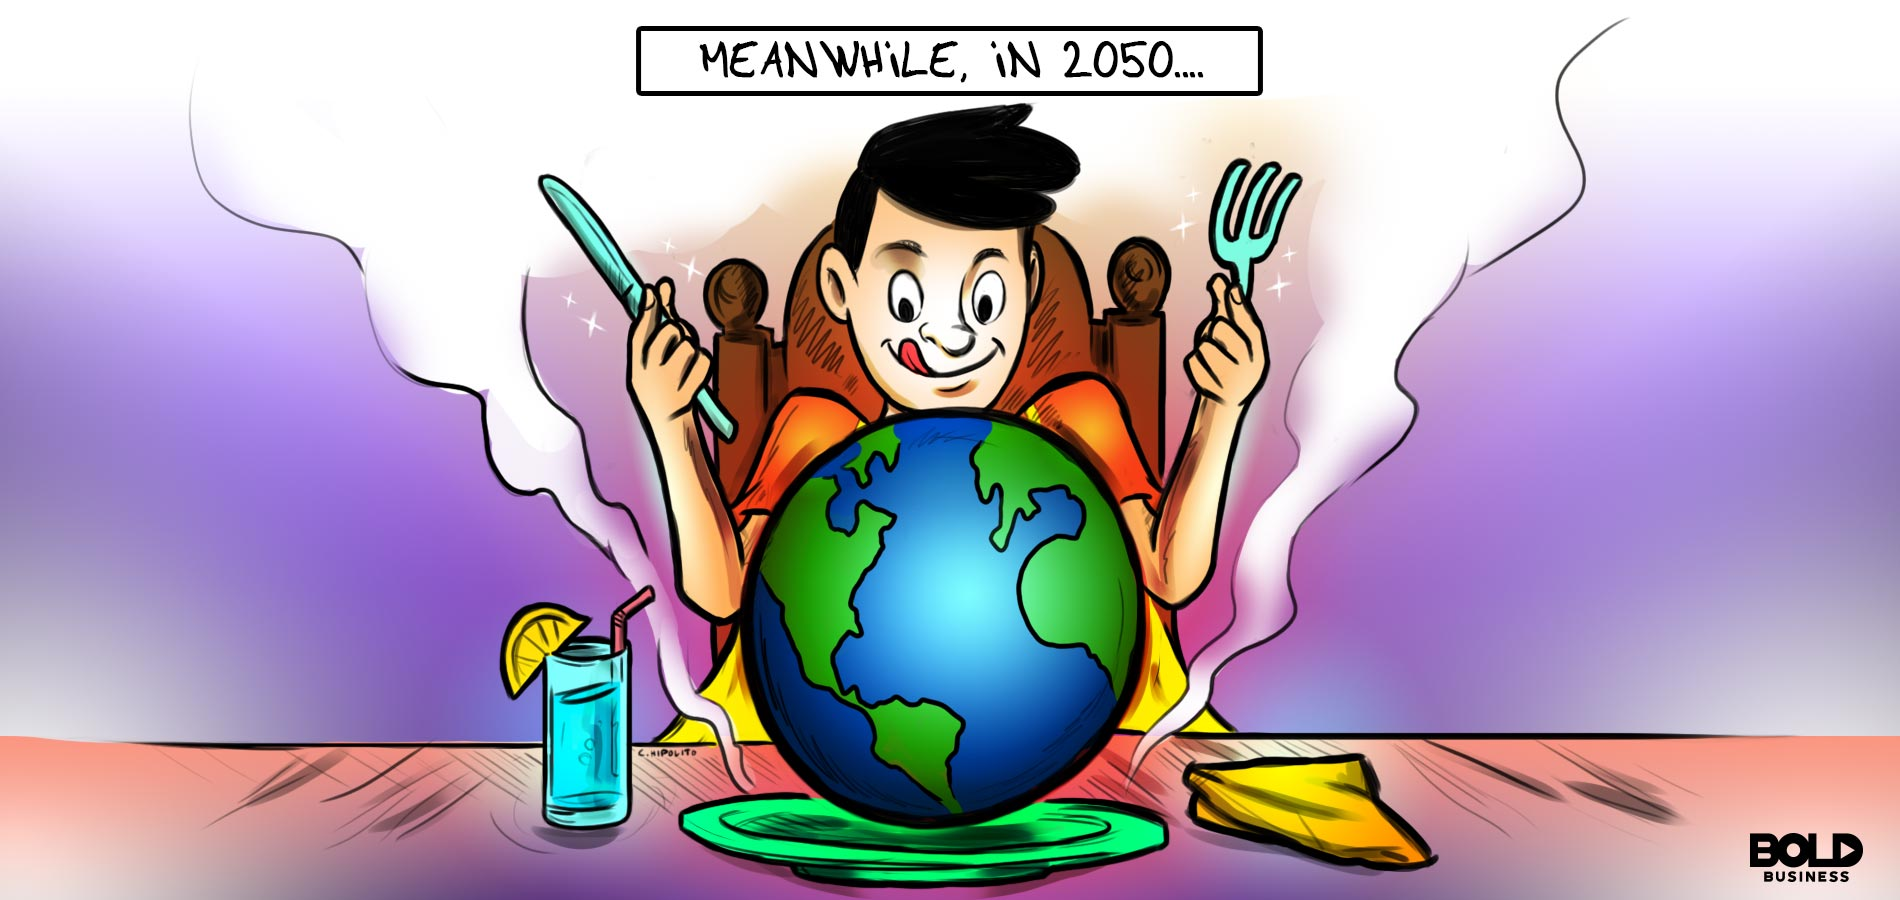 global food security cartoon of a man holding a fork and knife with a globe on a plate in front of him